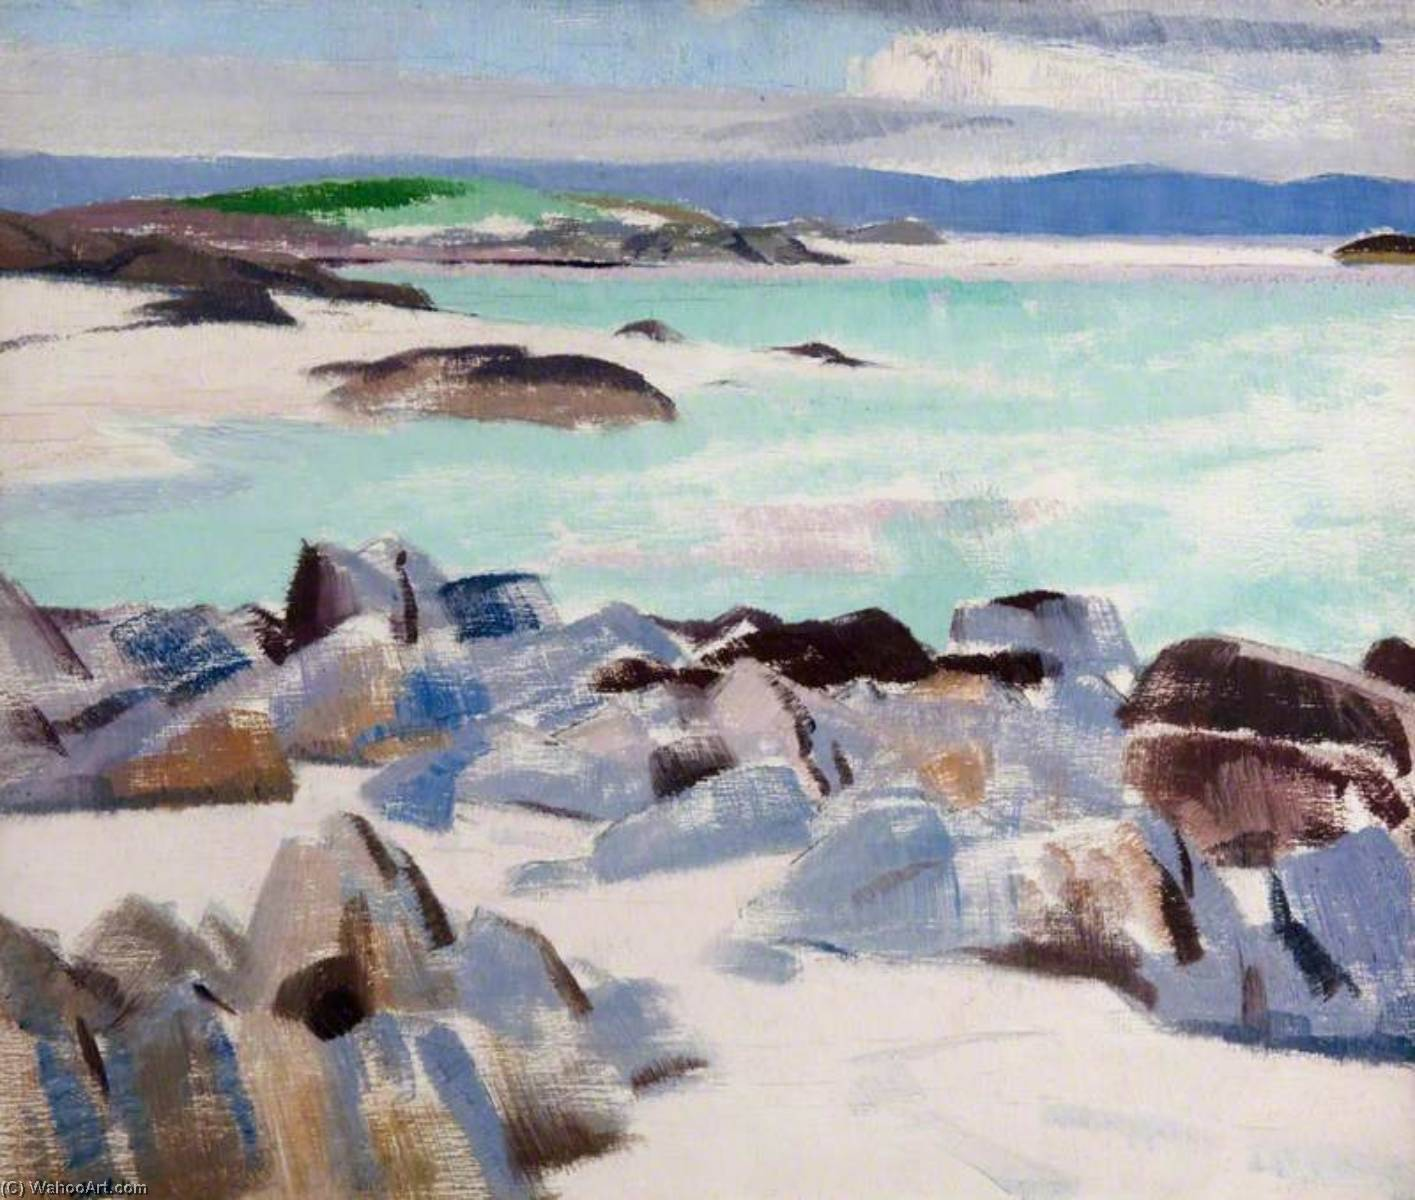 Ионы, холст, масло по Francis Campbell Boileau Cadell (1883-1937)